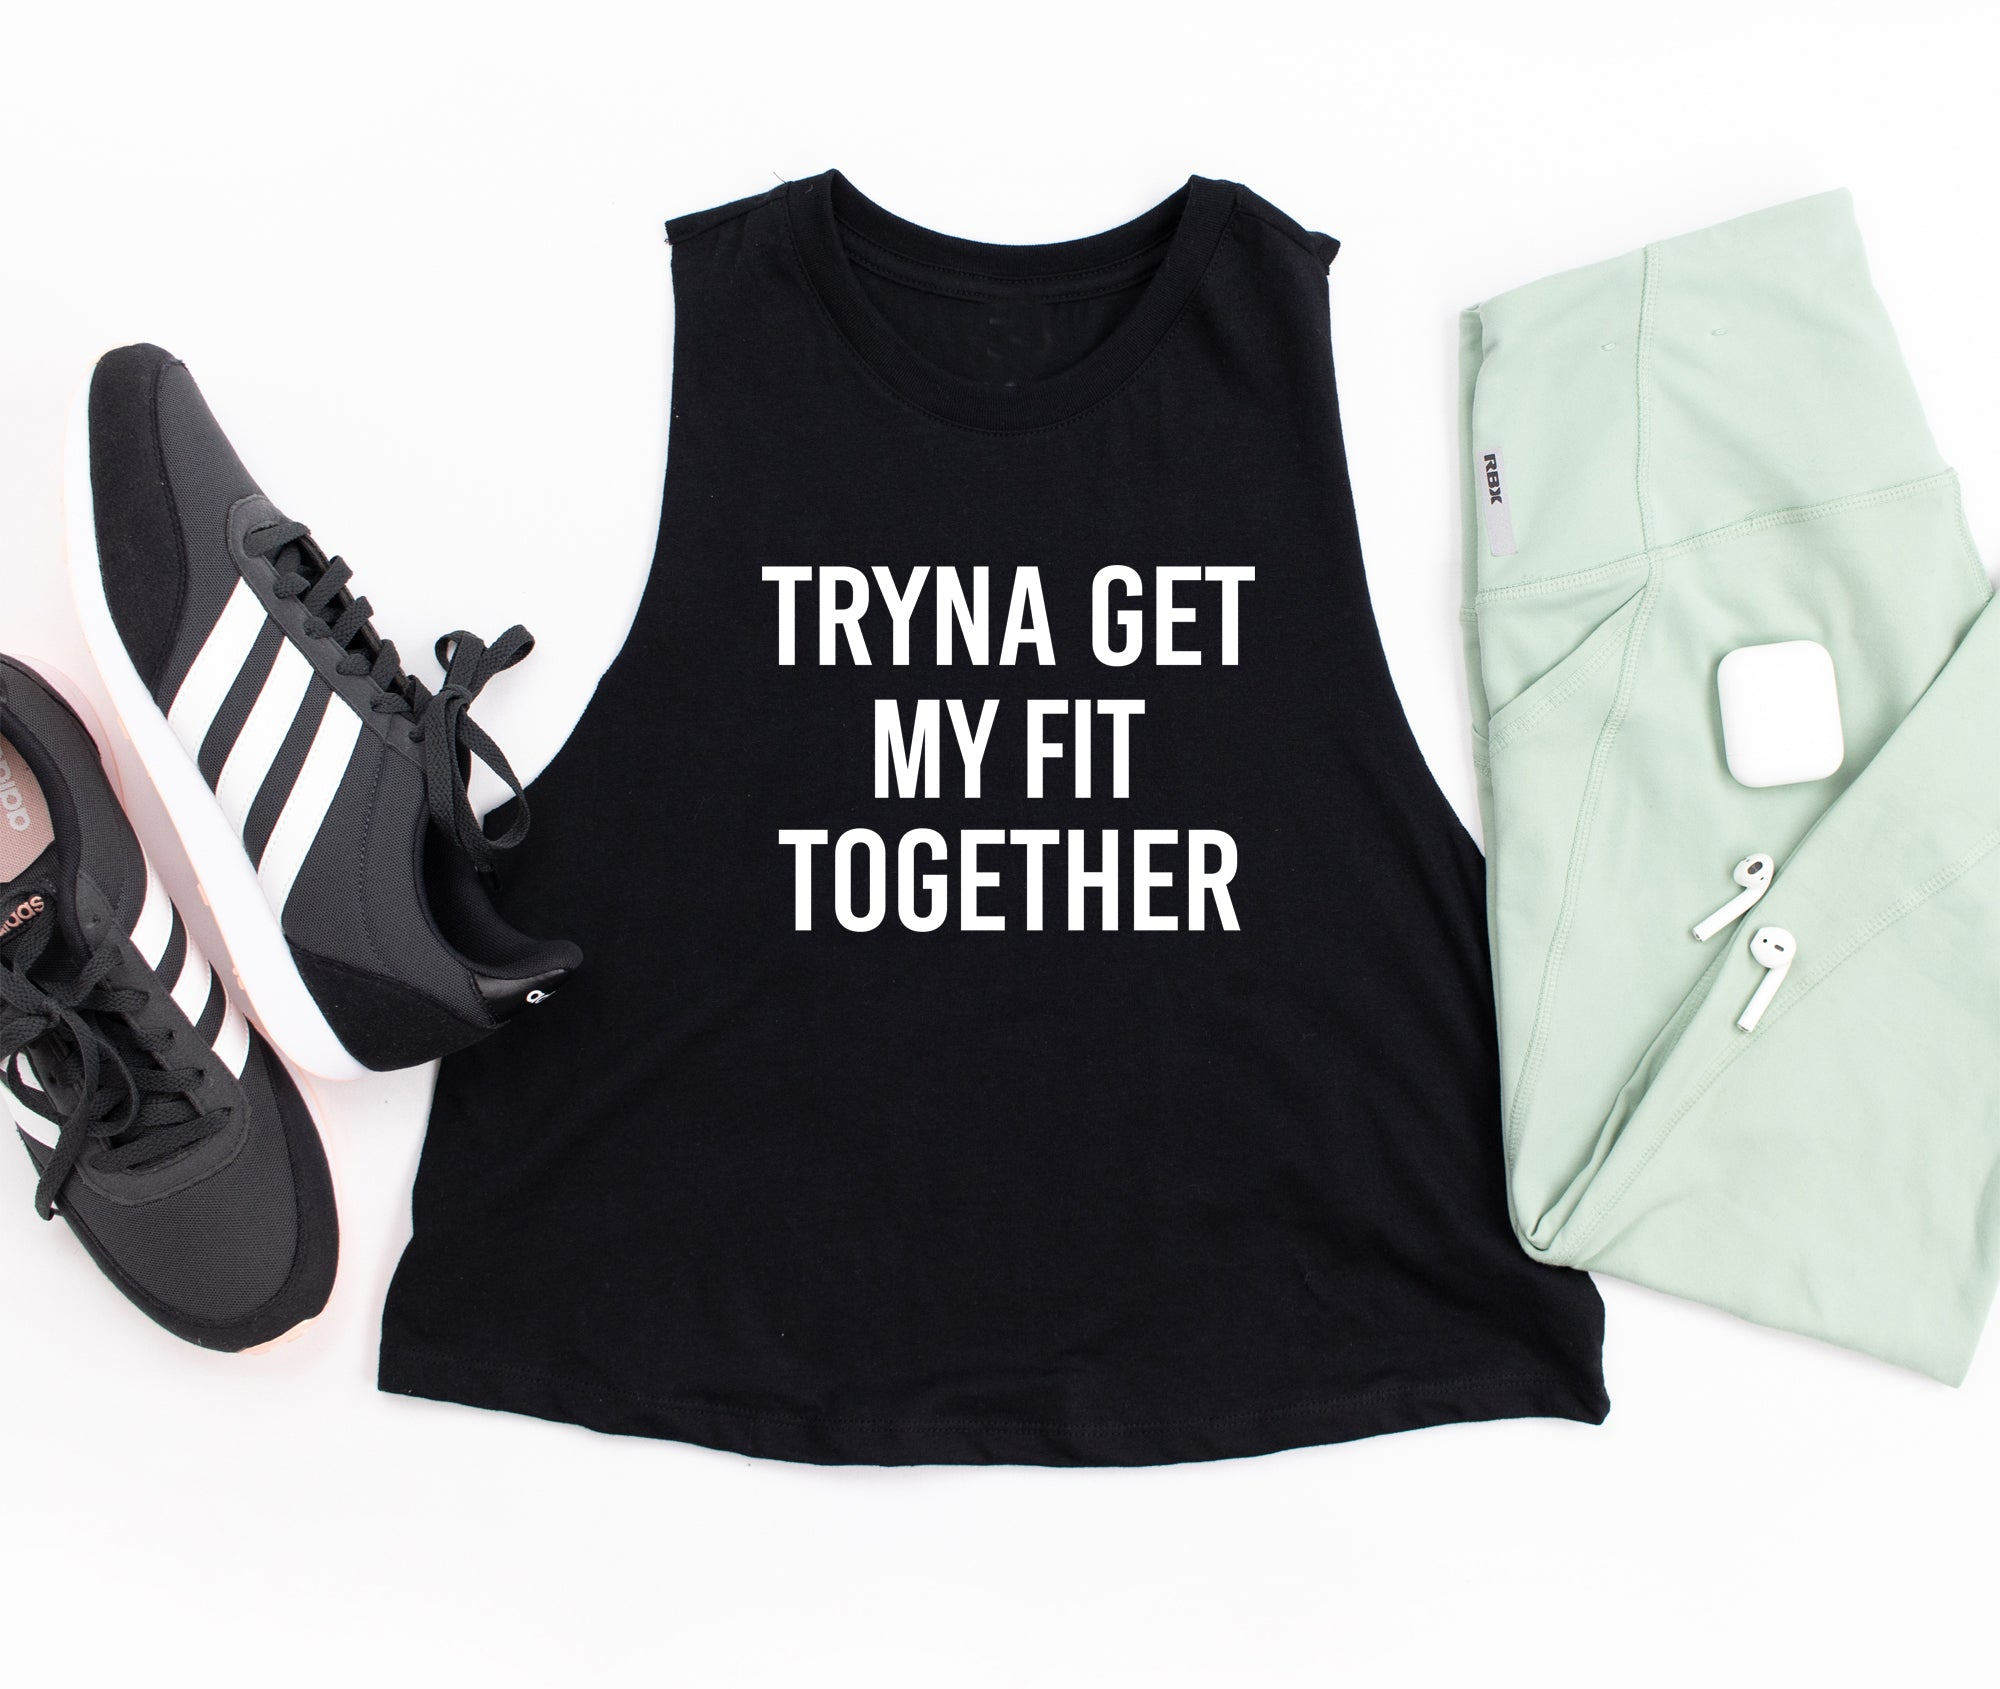 Tryna Get My Fit Together. Fitness Tank. Workout Shirt. Gym Tank. Lift Heavy. Womens Tank Top. Funny Fitness. Cross fit. Bootcamp. Hustle